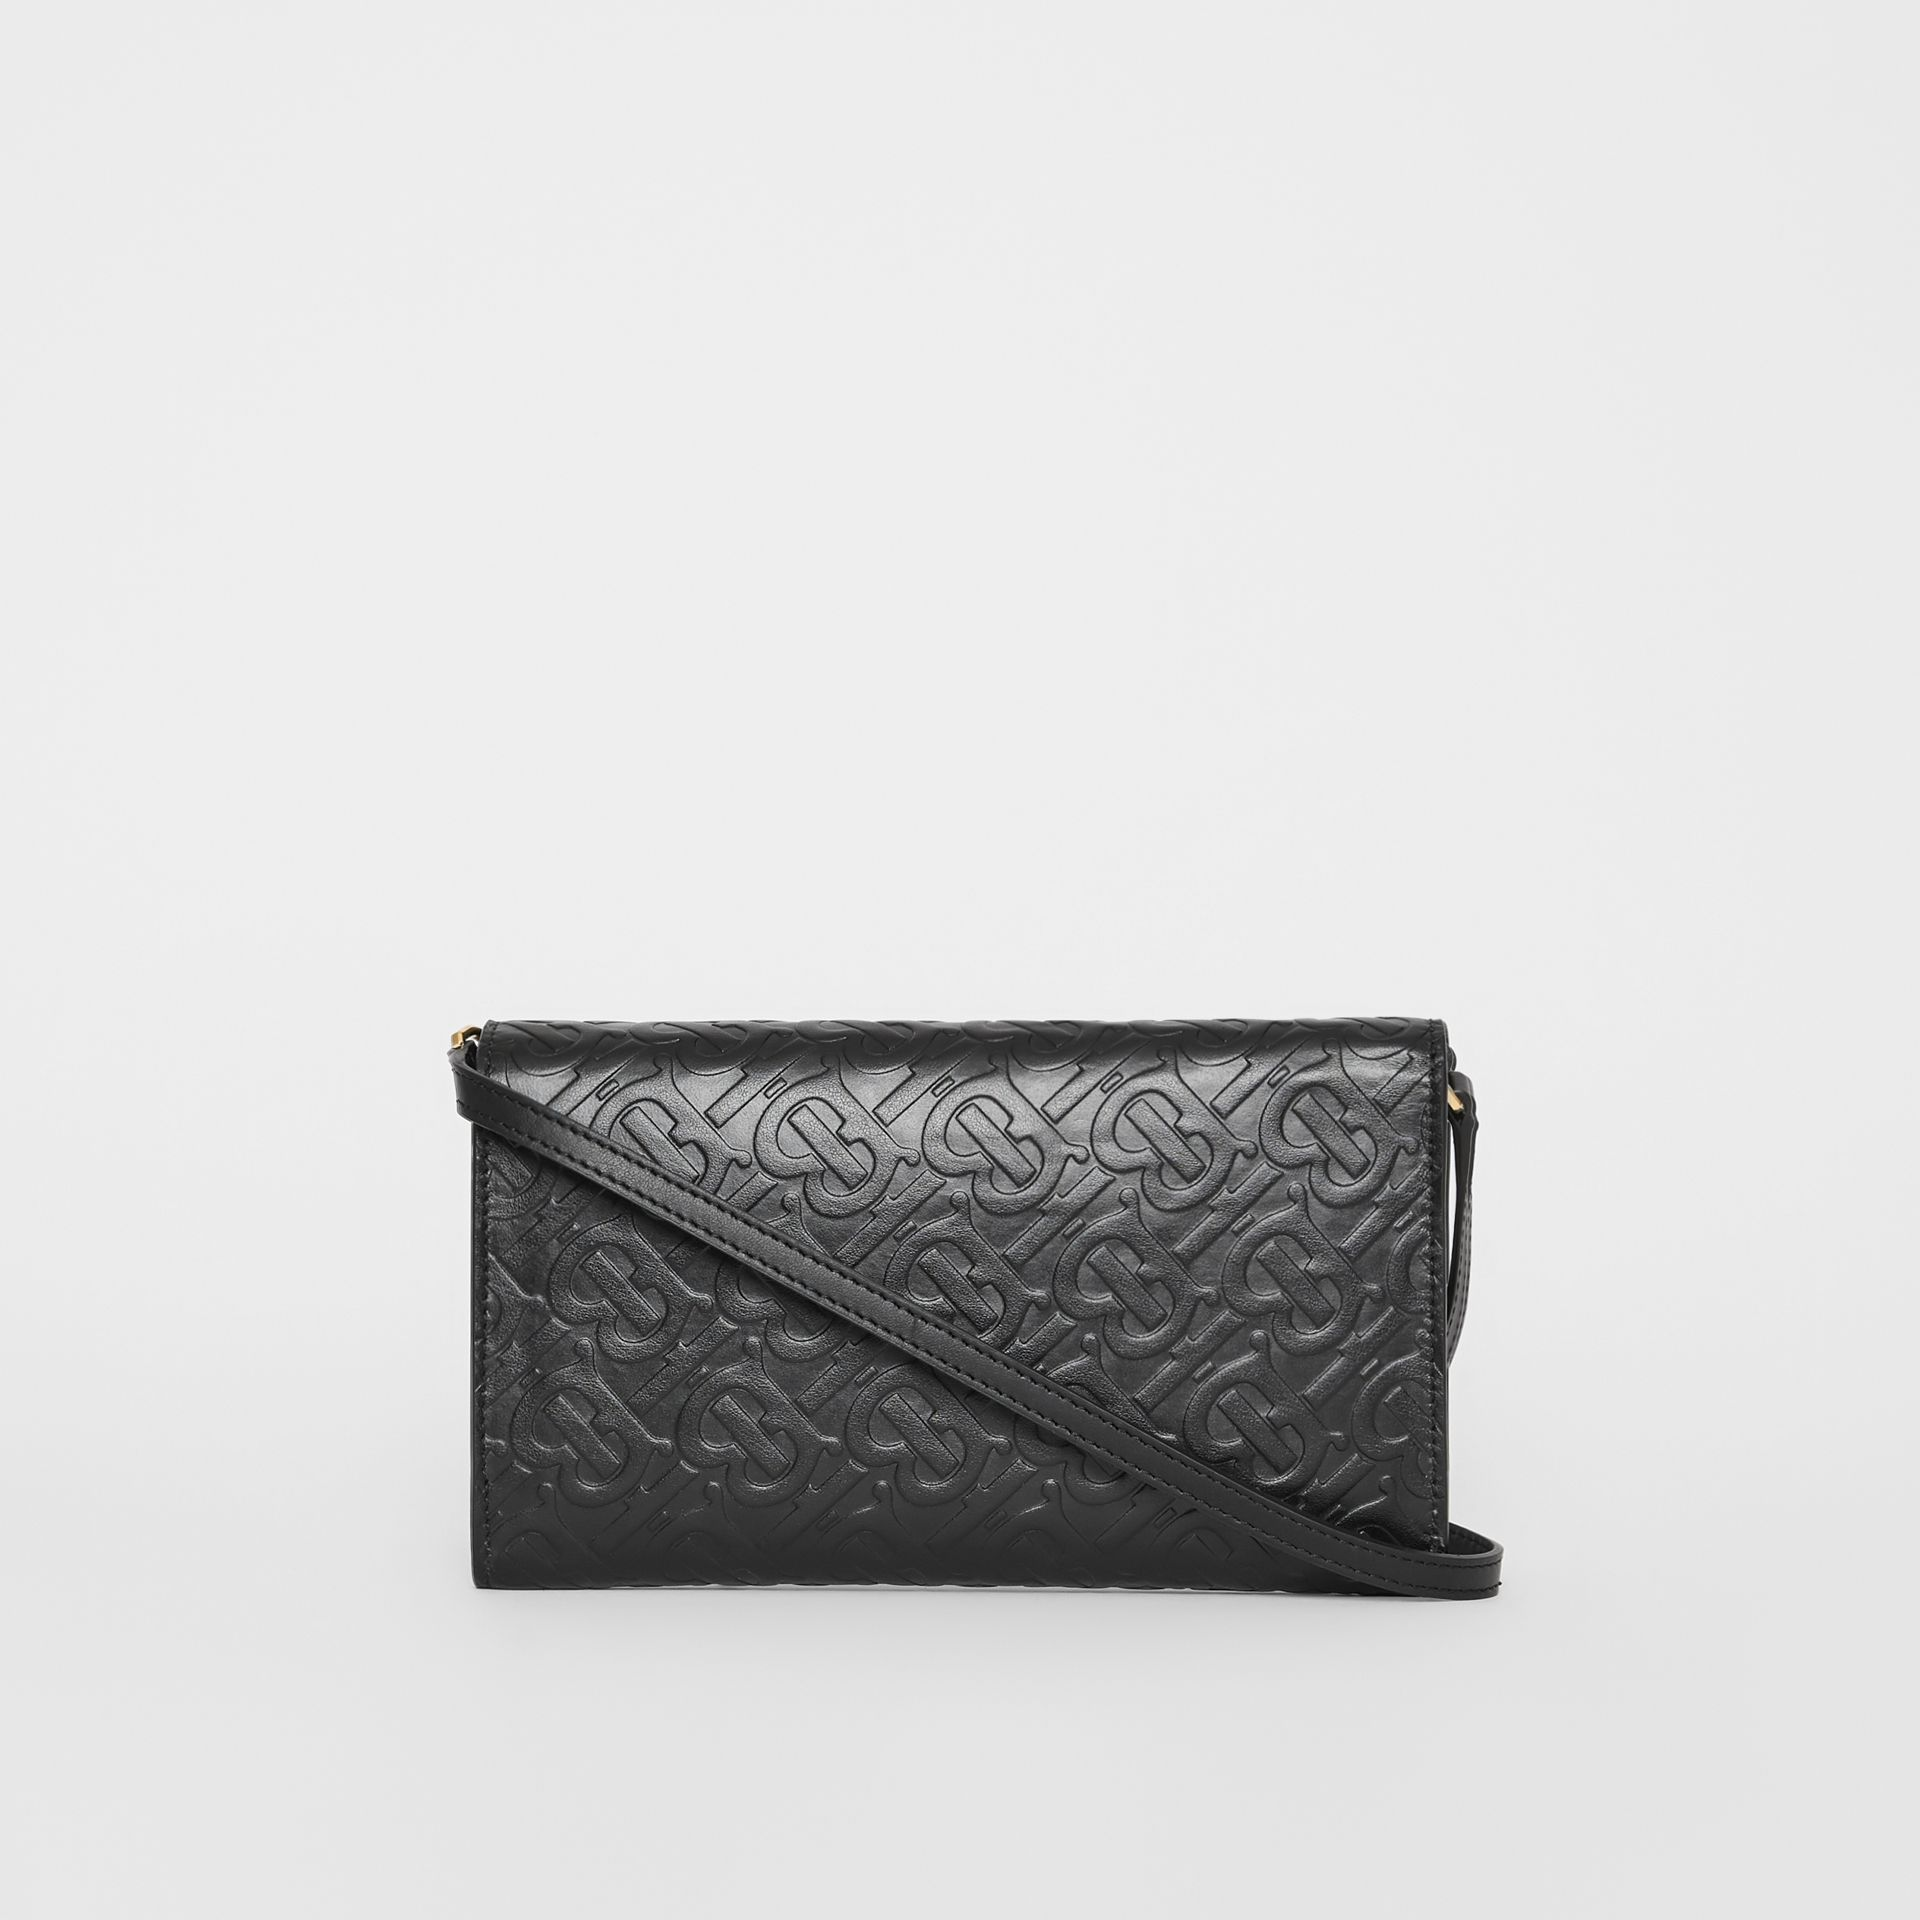 Monogram Leather Wallet with Detachable Strap in Black - Women | Burberry - gallery image 7